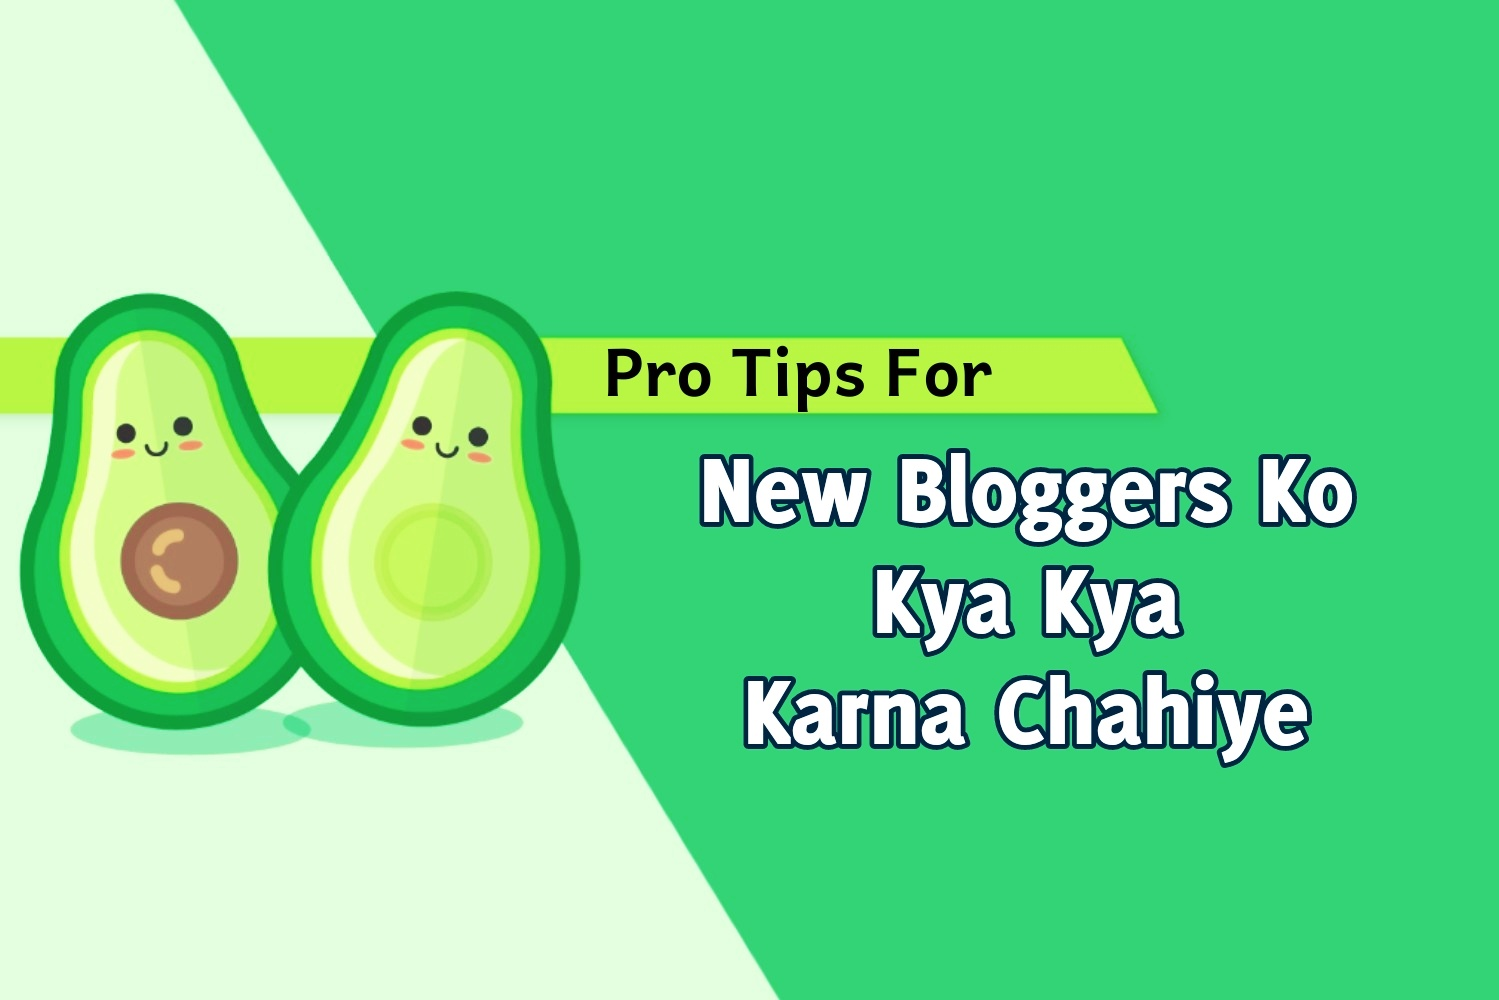 New Bloggers Ko Kya Karna Chahiye? New Bloggers Ke Liye Tips, New Blog Ke Liye Tips Ir Tricks